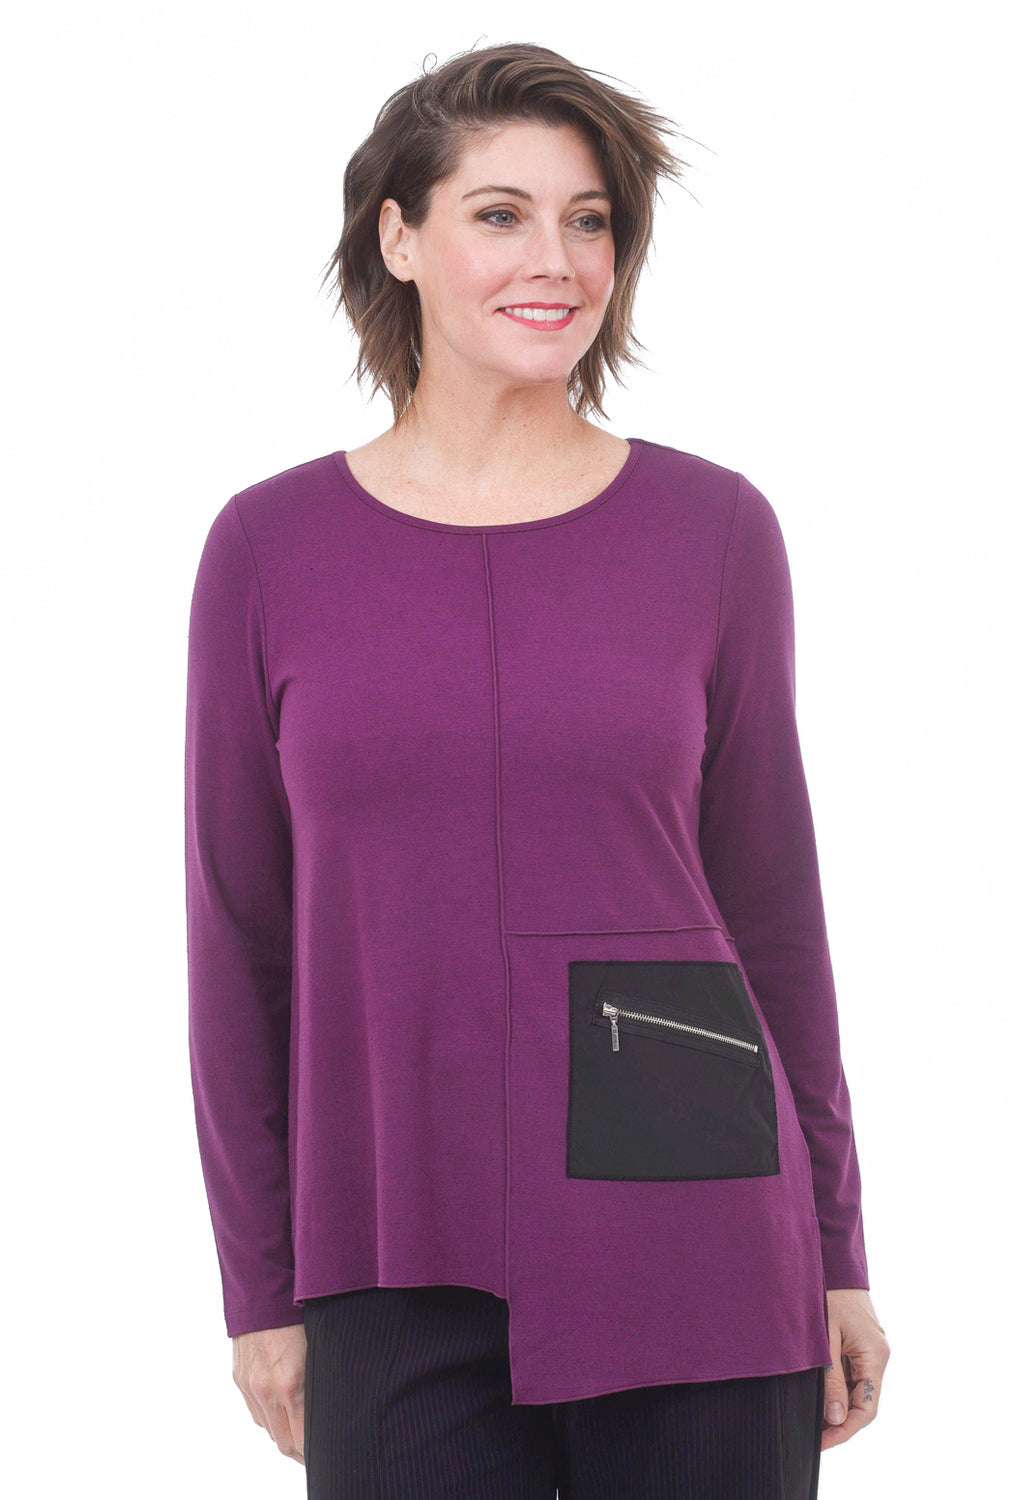 Heather Knit Harper Tee, Plum